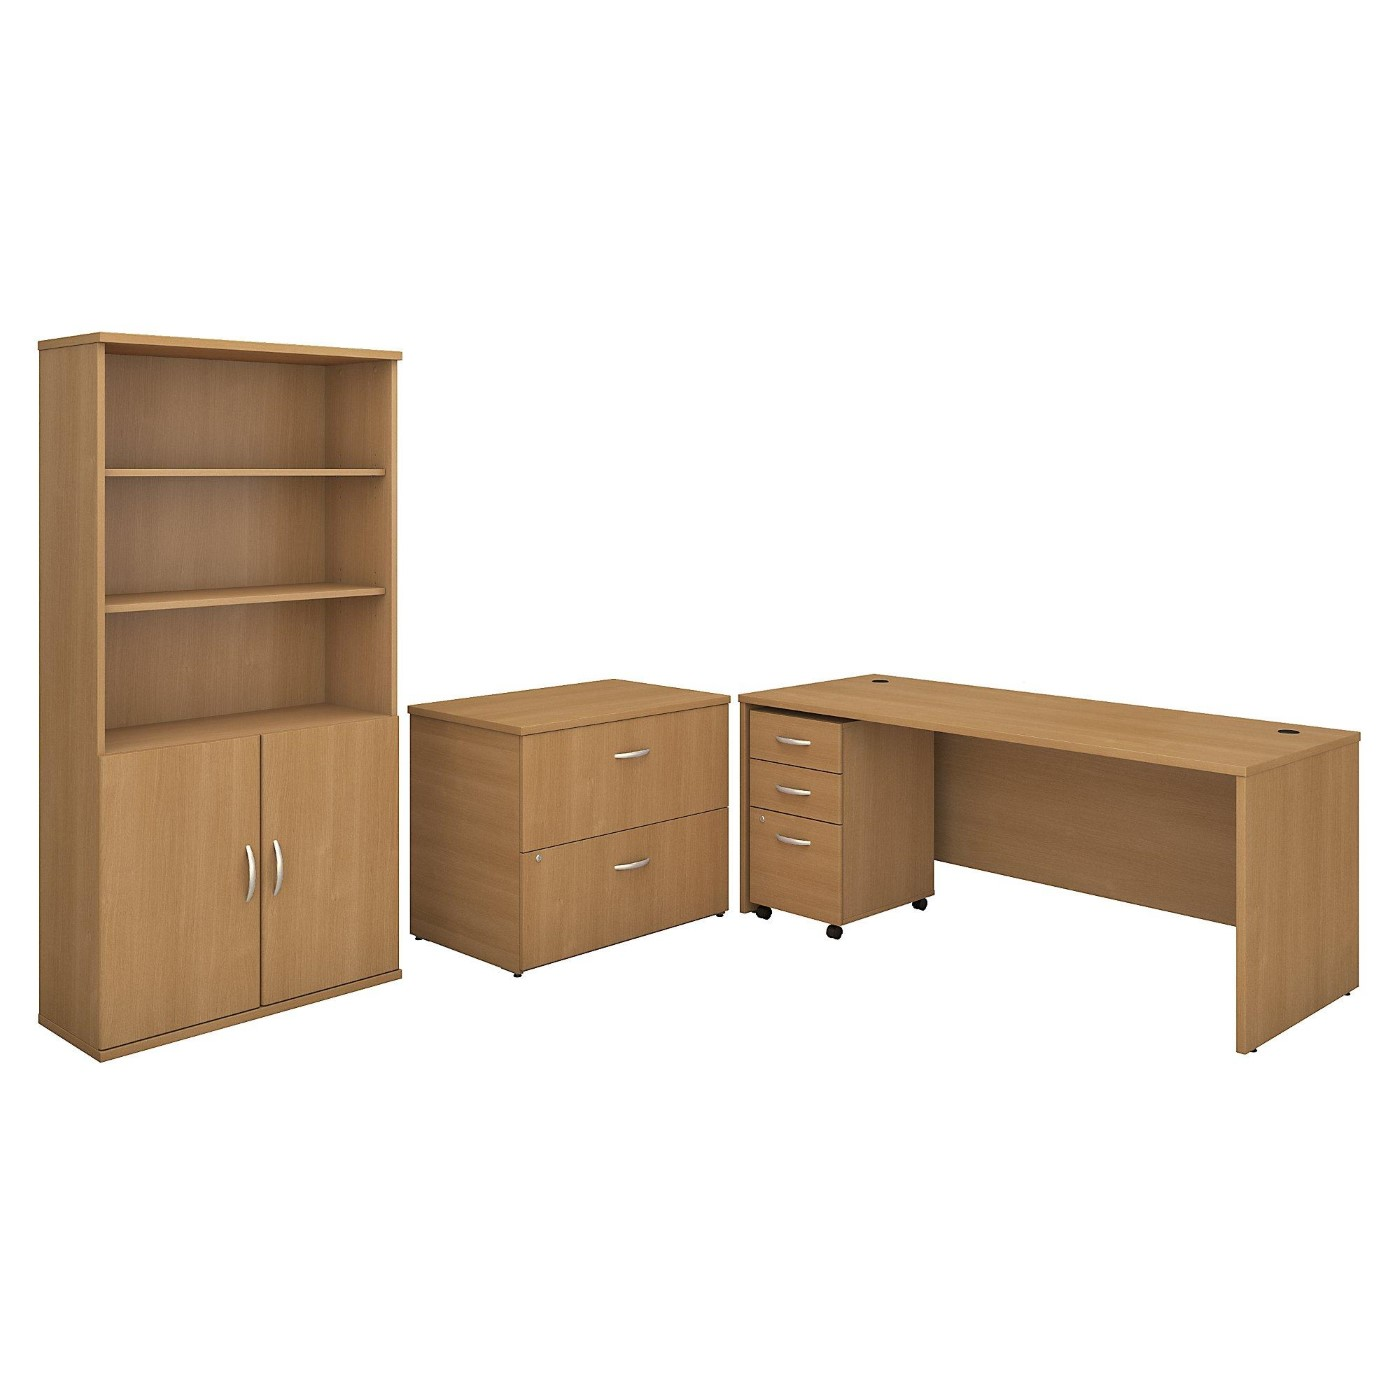 BUSH BUSINESS FURNITURE SERIES C 72W OFFICE DESK WITH BOOKCASE AND FILE CABINETS. FREE SHIPPING.